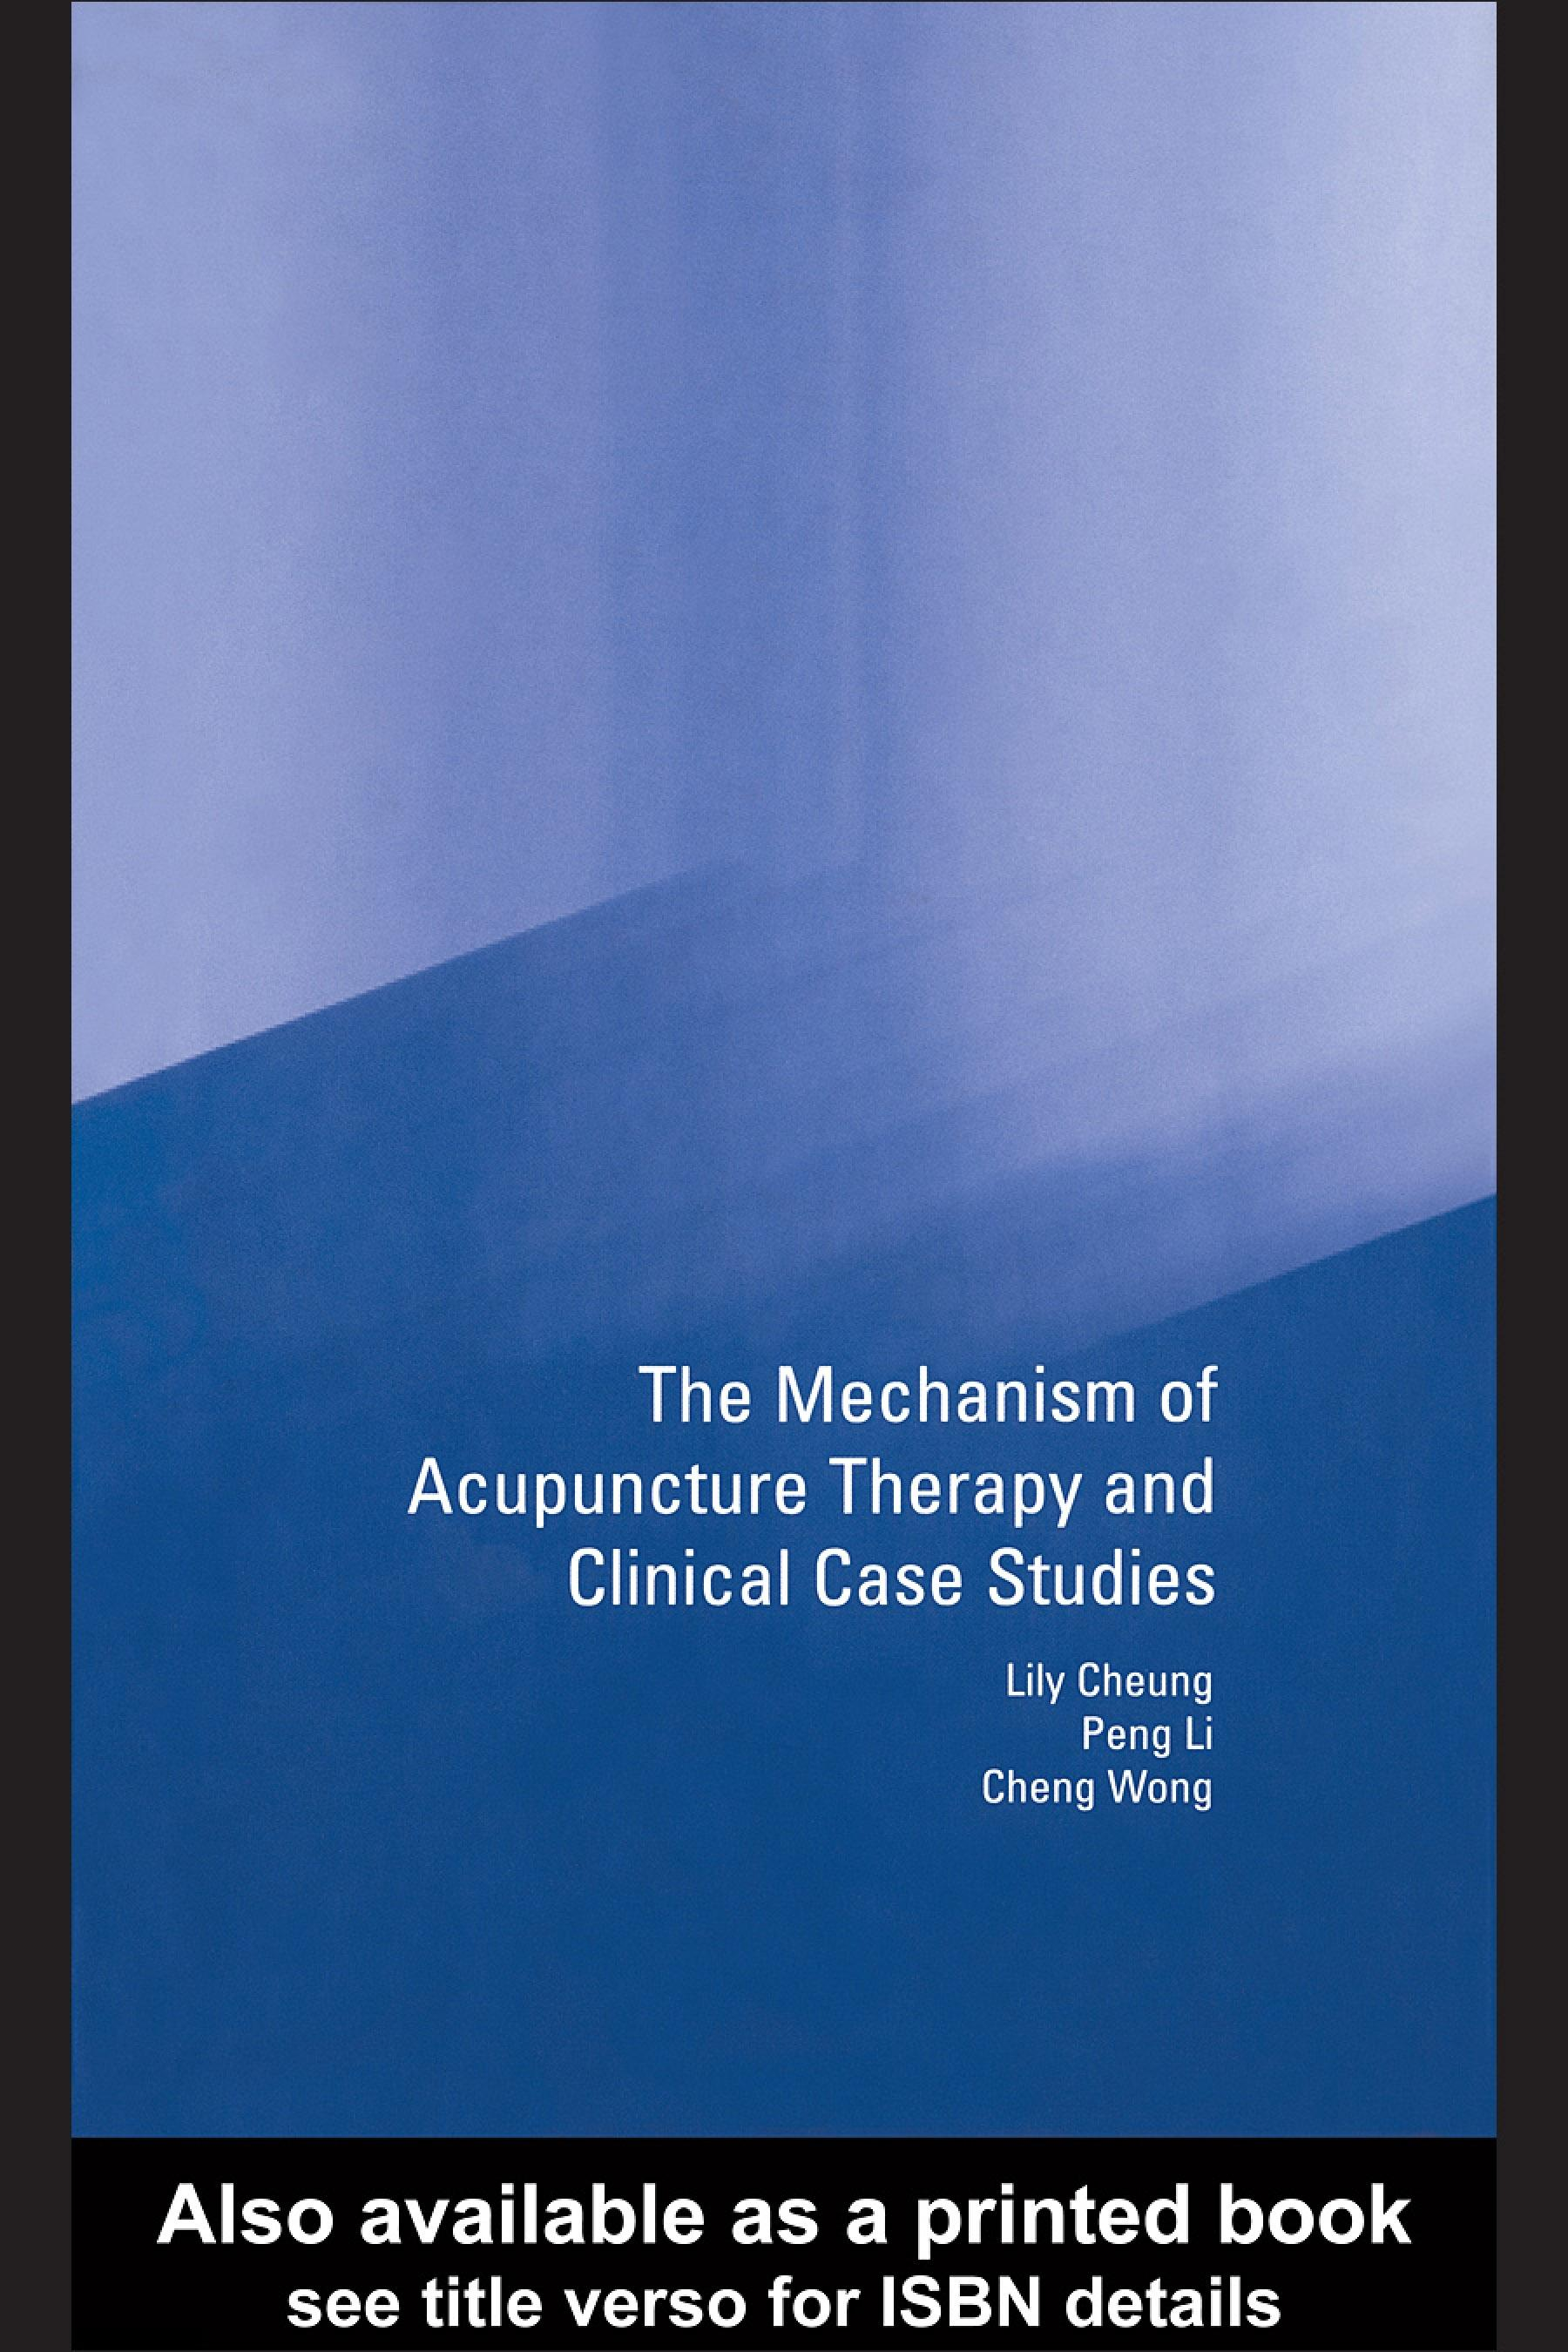 Mechanism of Acupuncture Therapy and Clinical Case Studies EB9780203301265